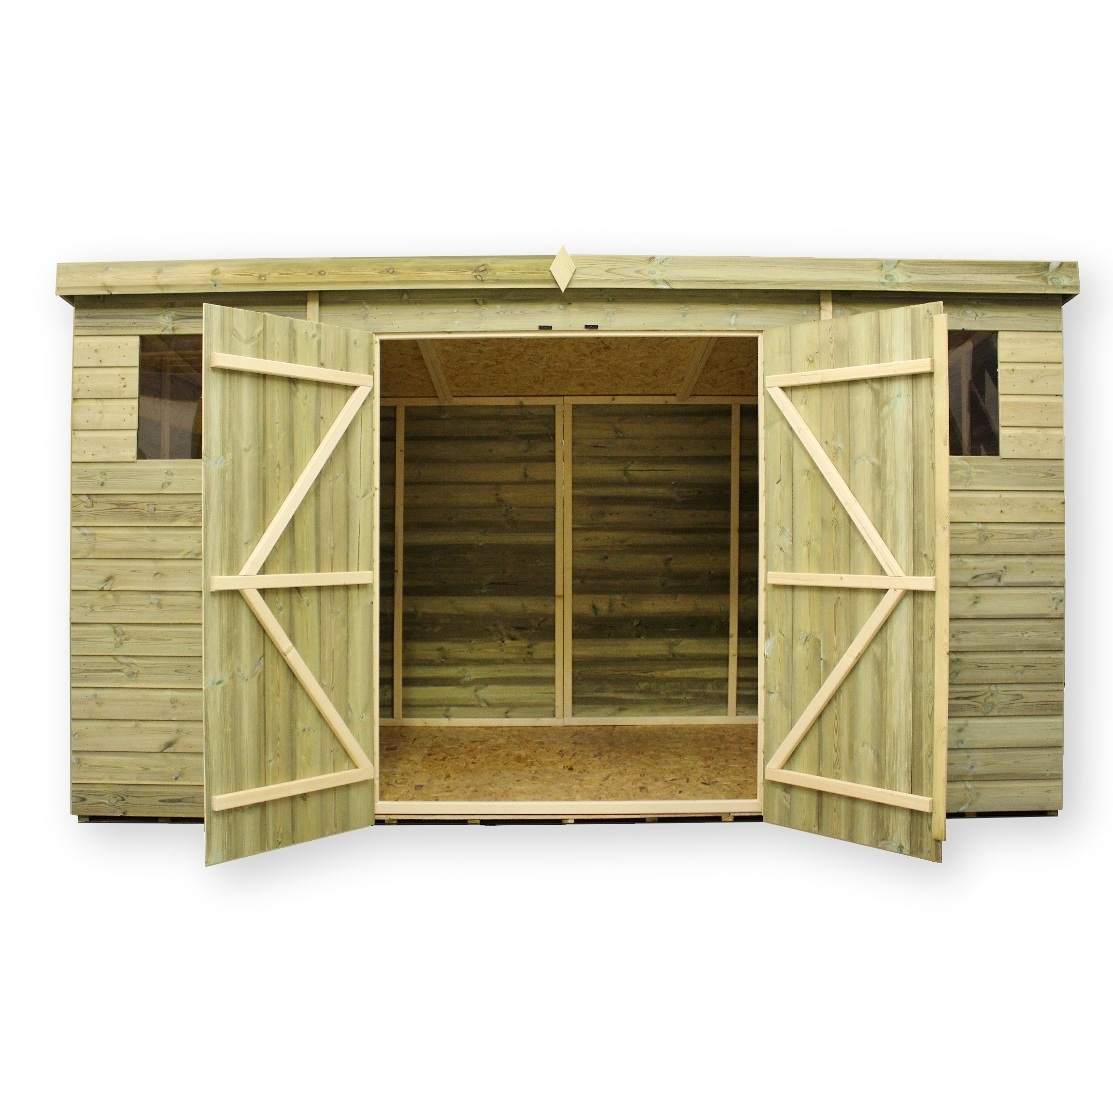 10 x 8 pent shed plans using pallets for flooring plan shed for 10x8 shed floor plans